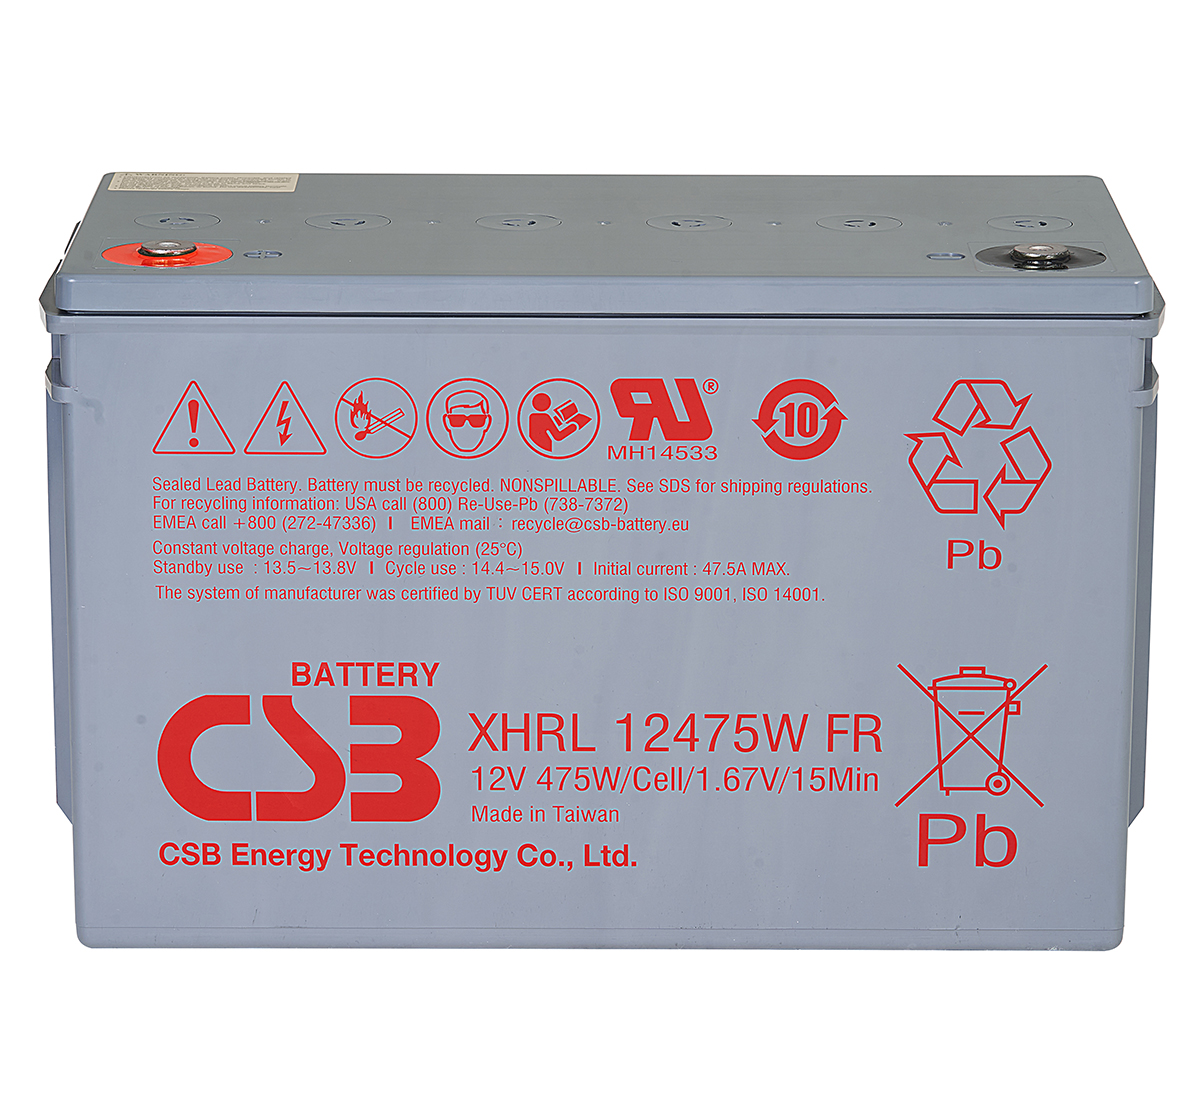 CSB XHRL12475W 475W Extreme High Rate Long Life Battery